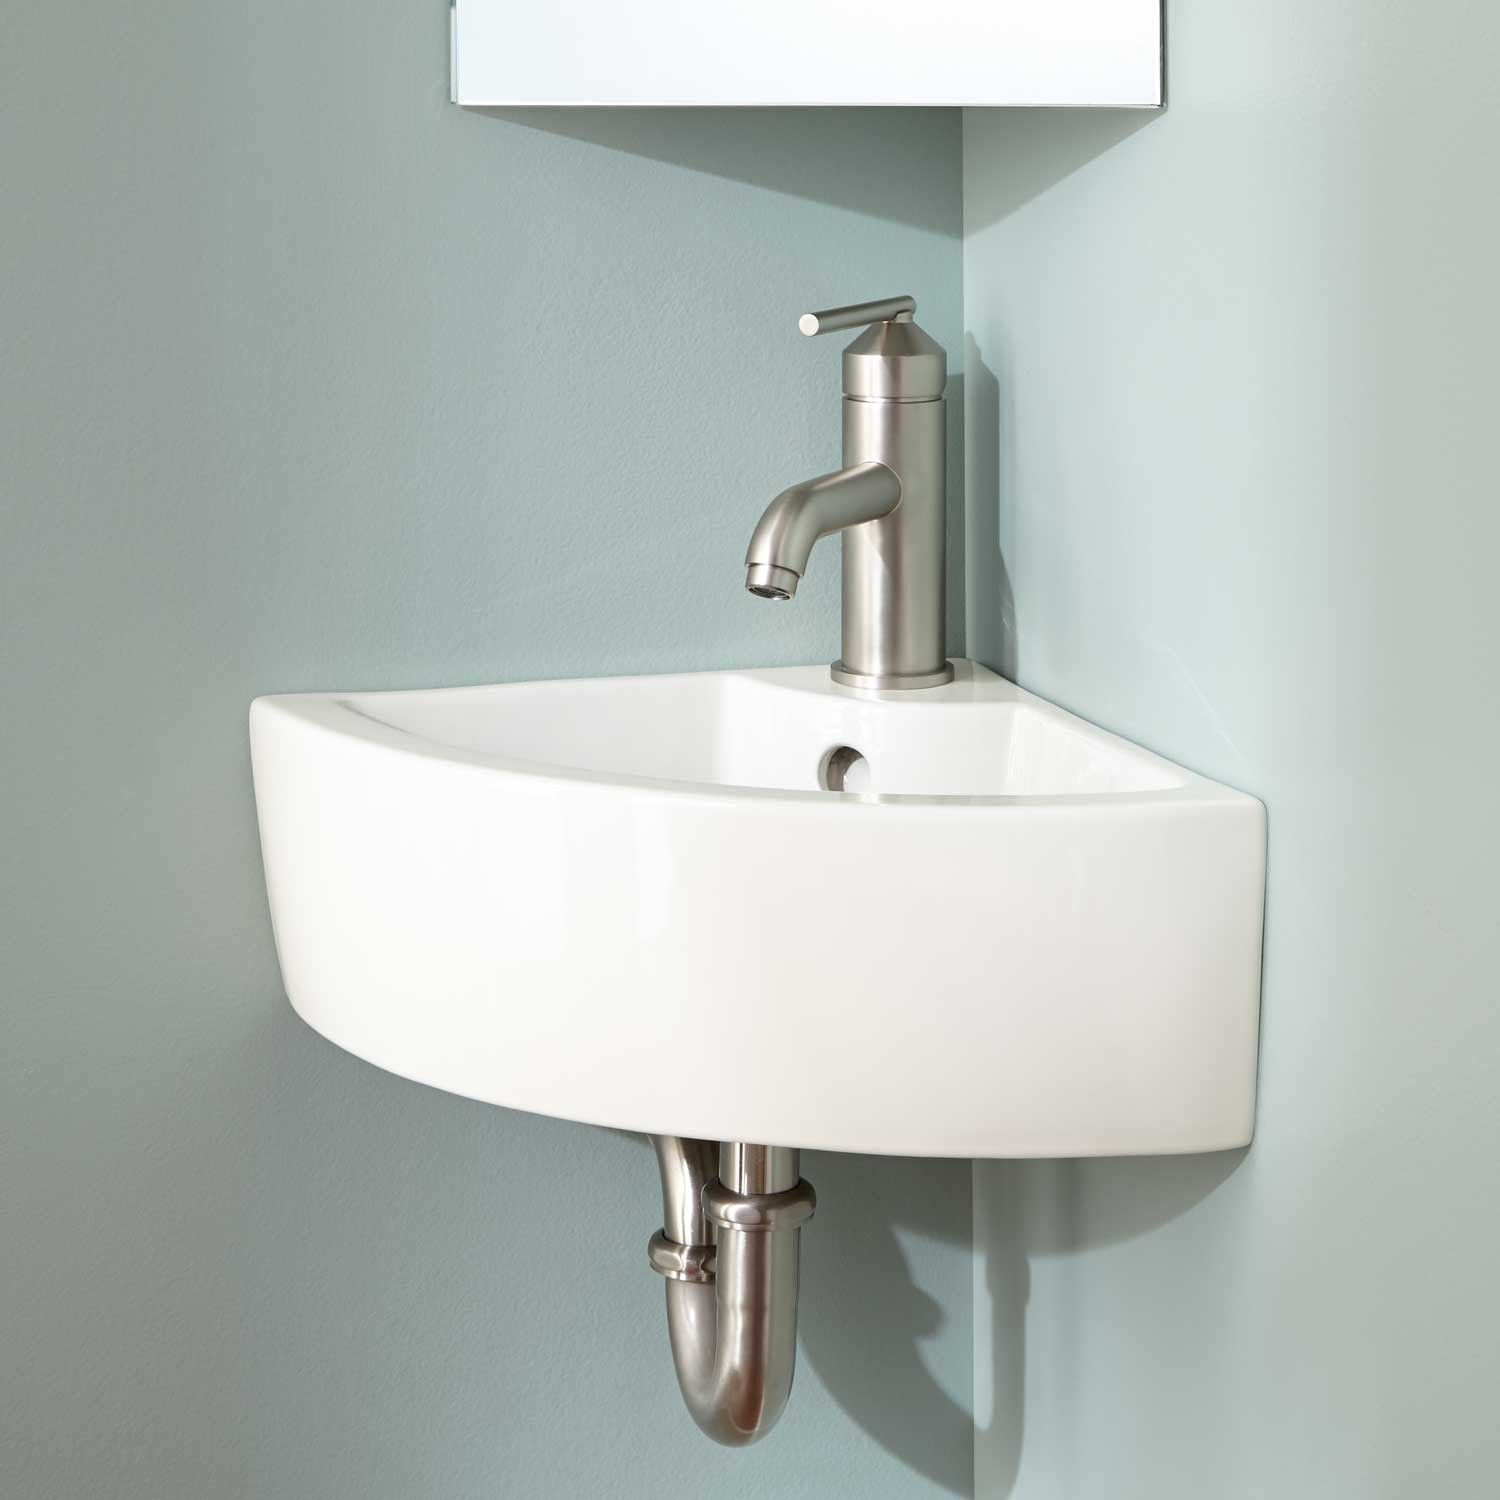 Amelda Wall Mount Corner Bathroom Sink For the Home